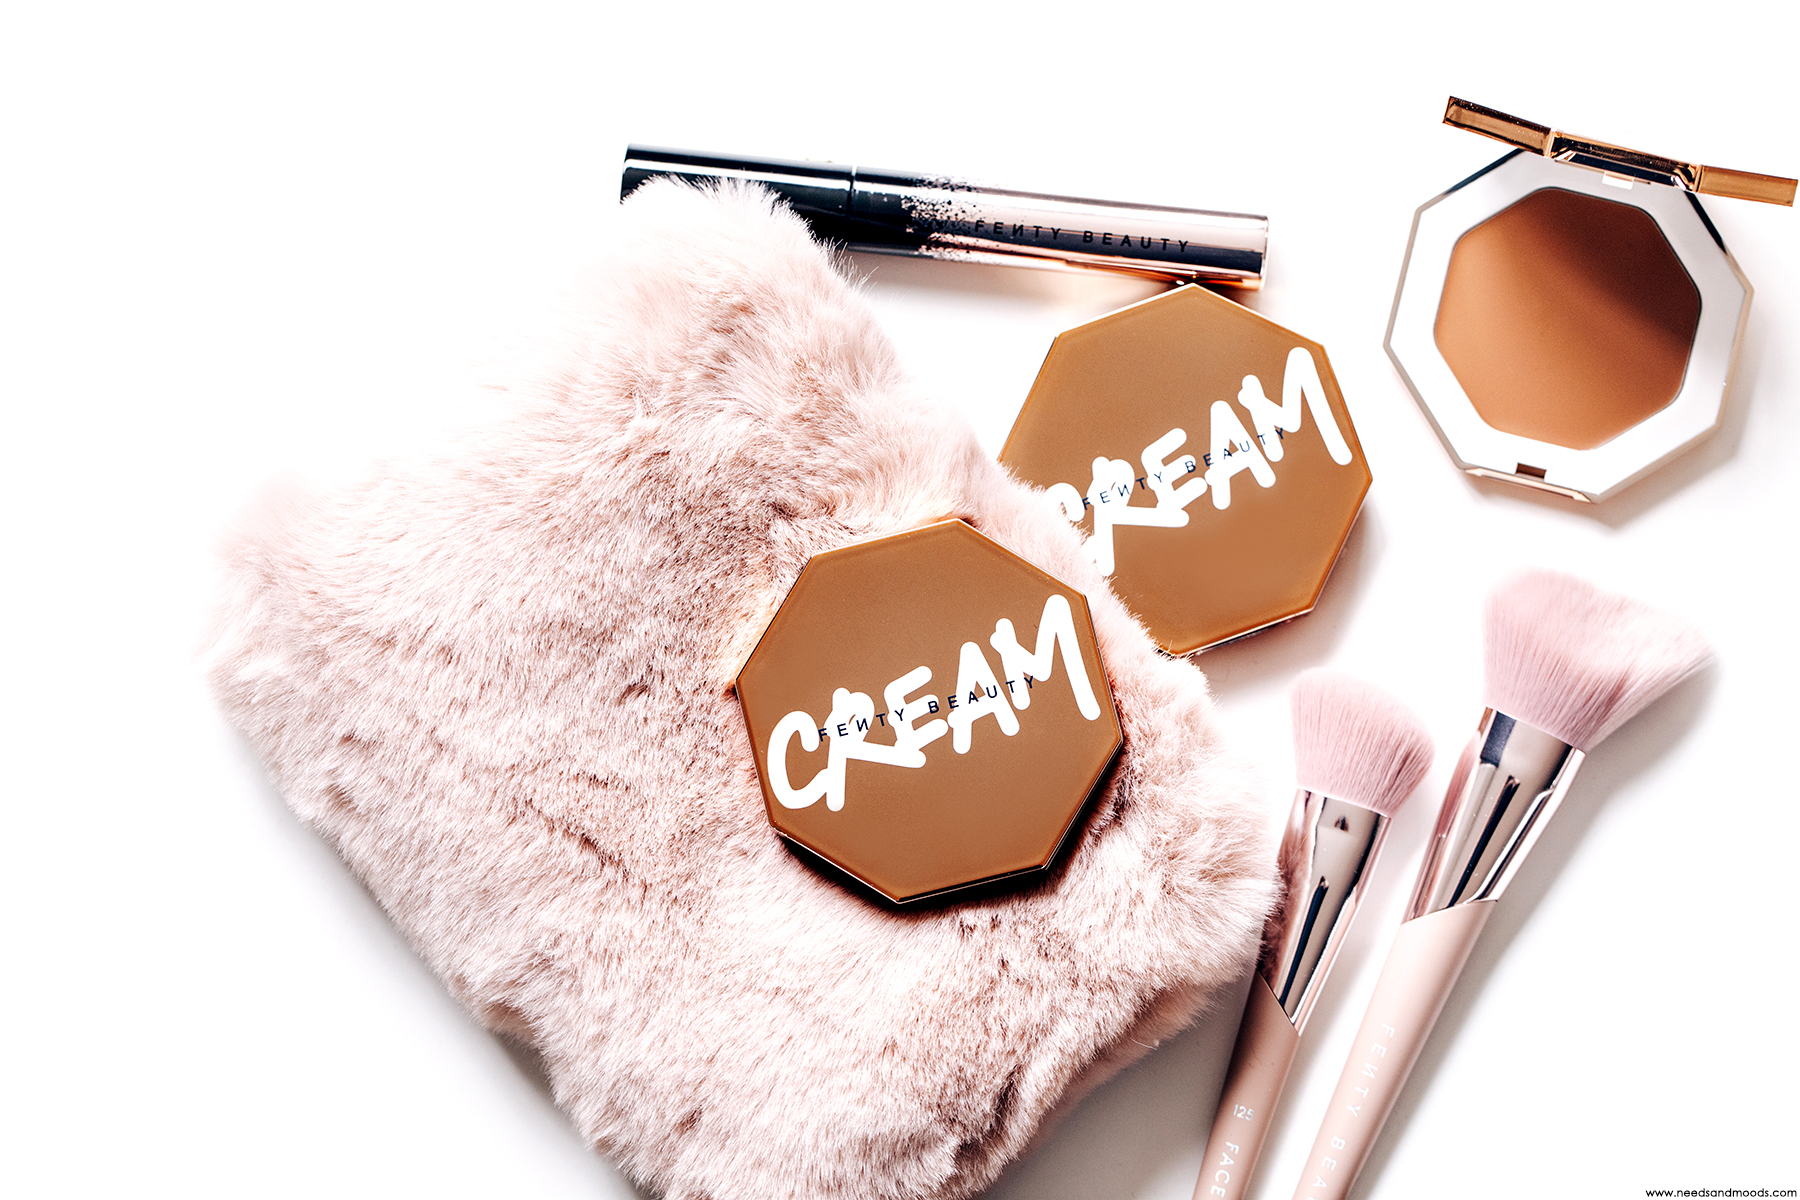 fenty-beauty-cheeks-out-freestyle-cream-bronzer